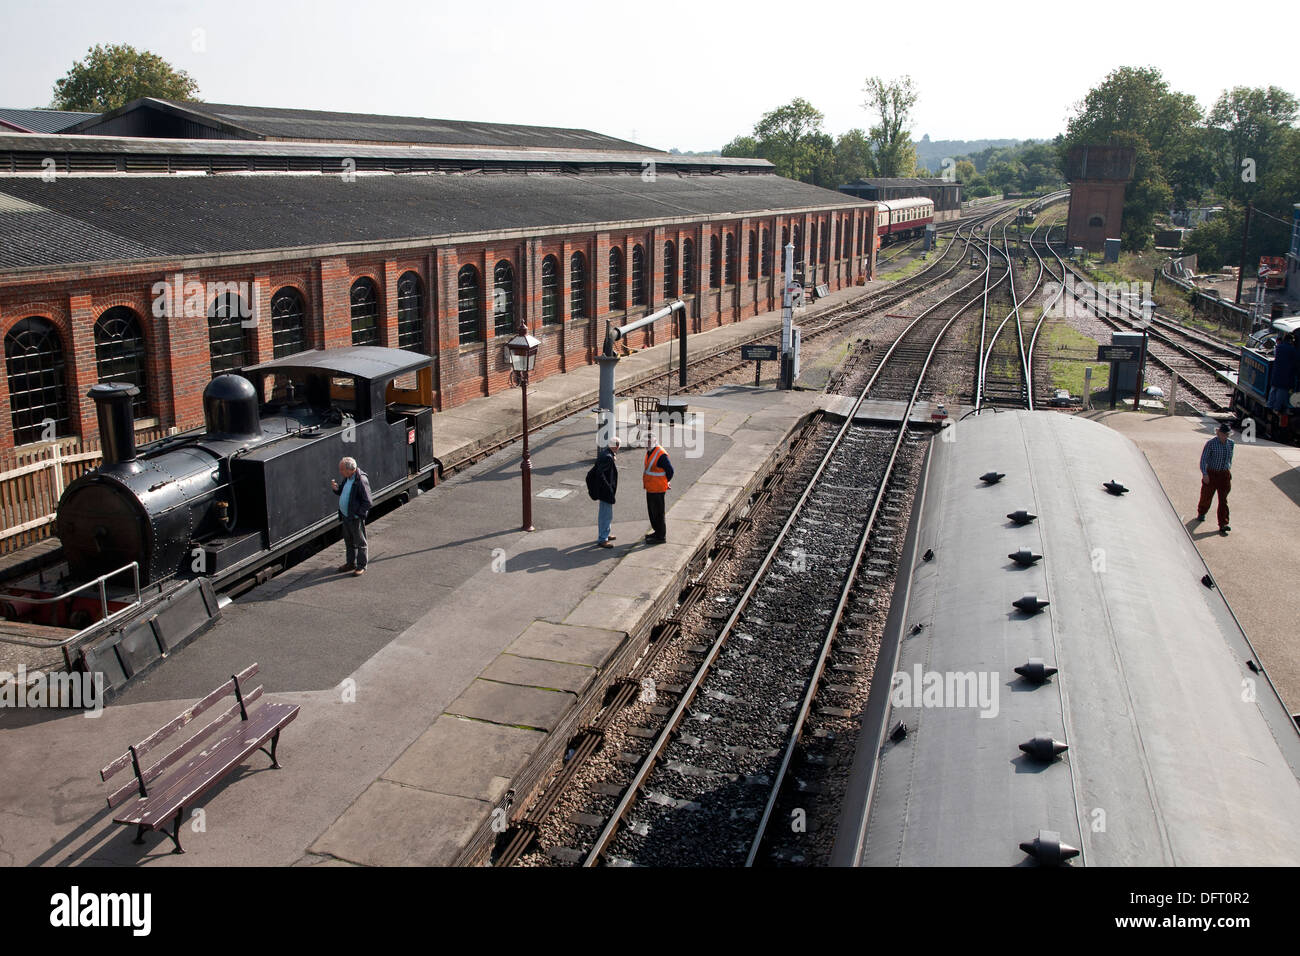 Sheffield Park Station platform and steam engine on Bluebell Railway - Stock Image